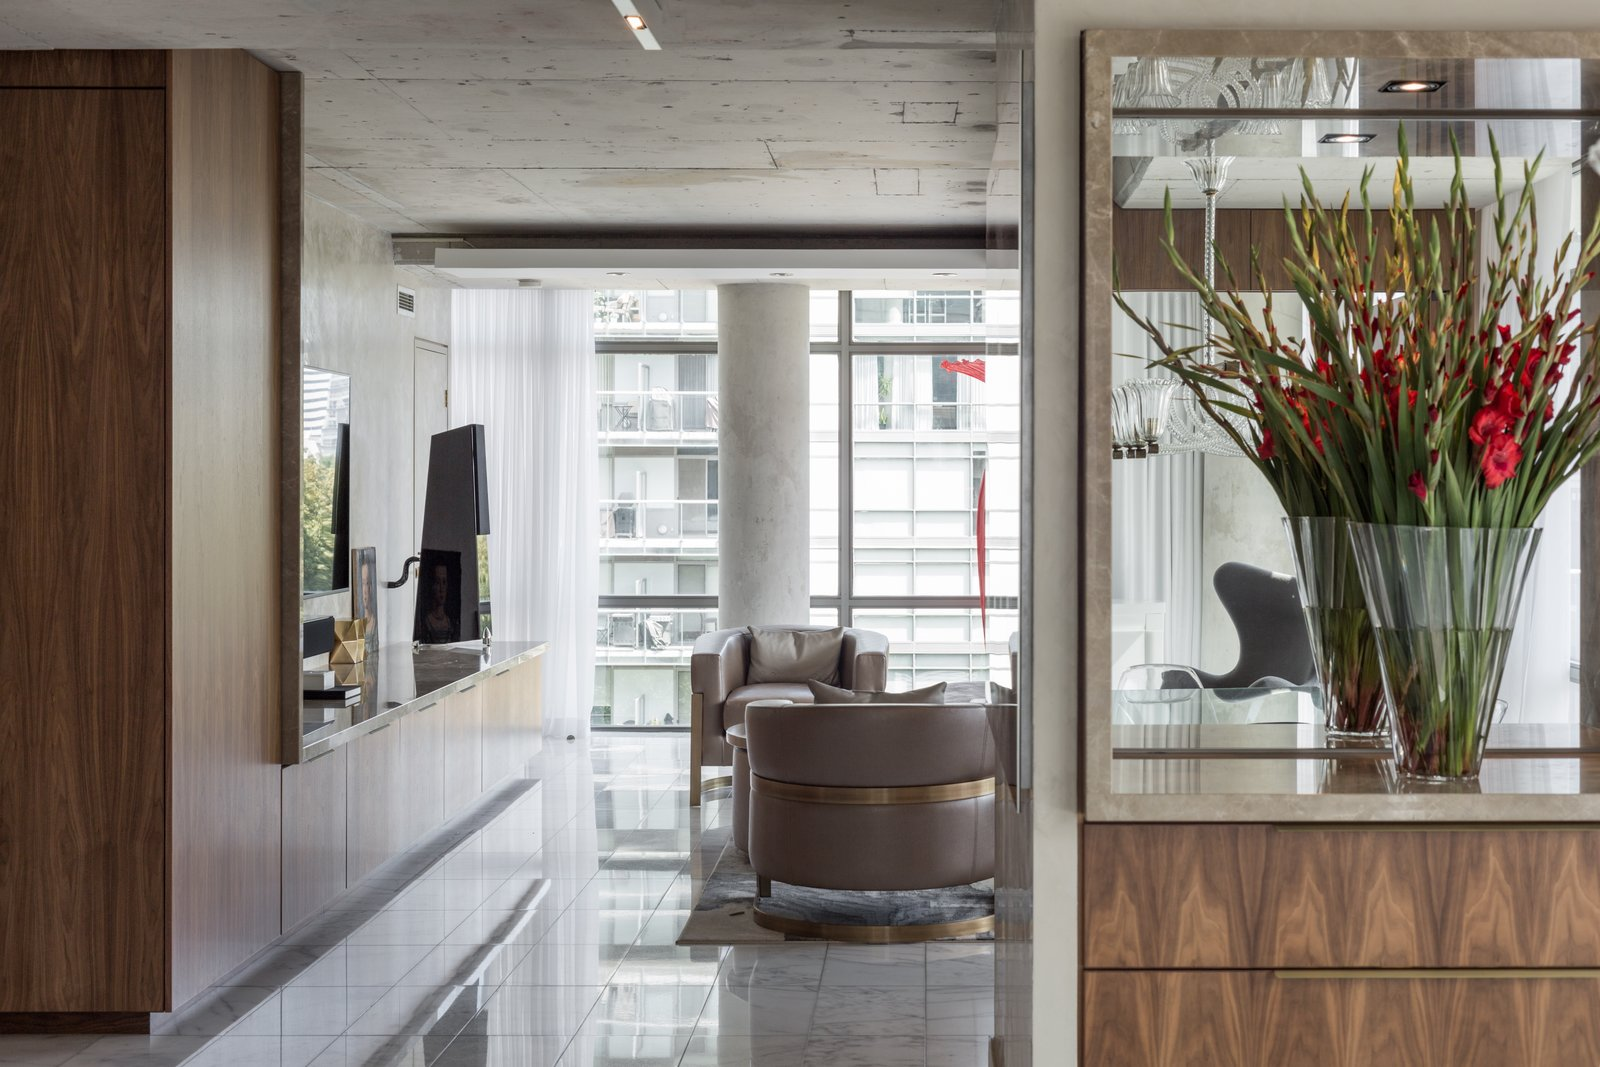 Custom millwork was inserted into the space to not only house it's function, but also give definition to the spaces. The openness or intimacy of spaces are defined by the millwork.  Thompson Hotel Private Suite by ANTHONY PROVENZANO ARCHITECTS